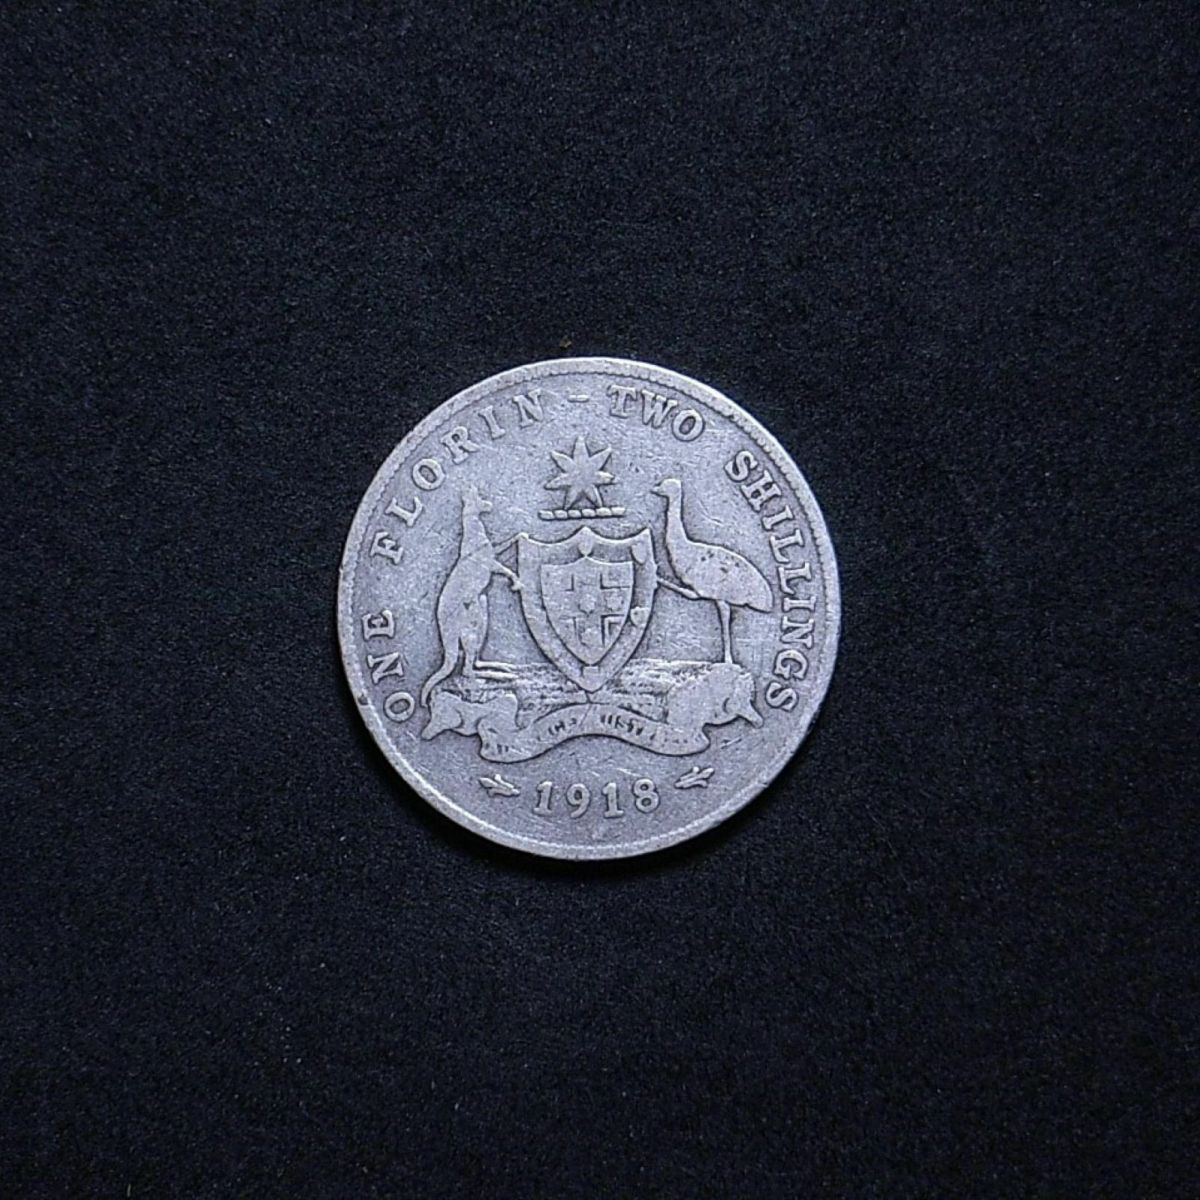 Aussie 1918M reverse showing the extent of wear on the coin